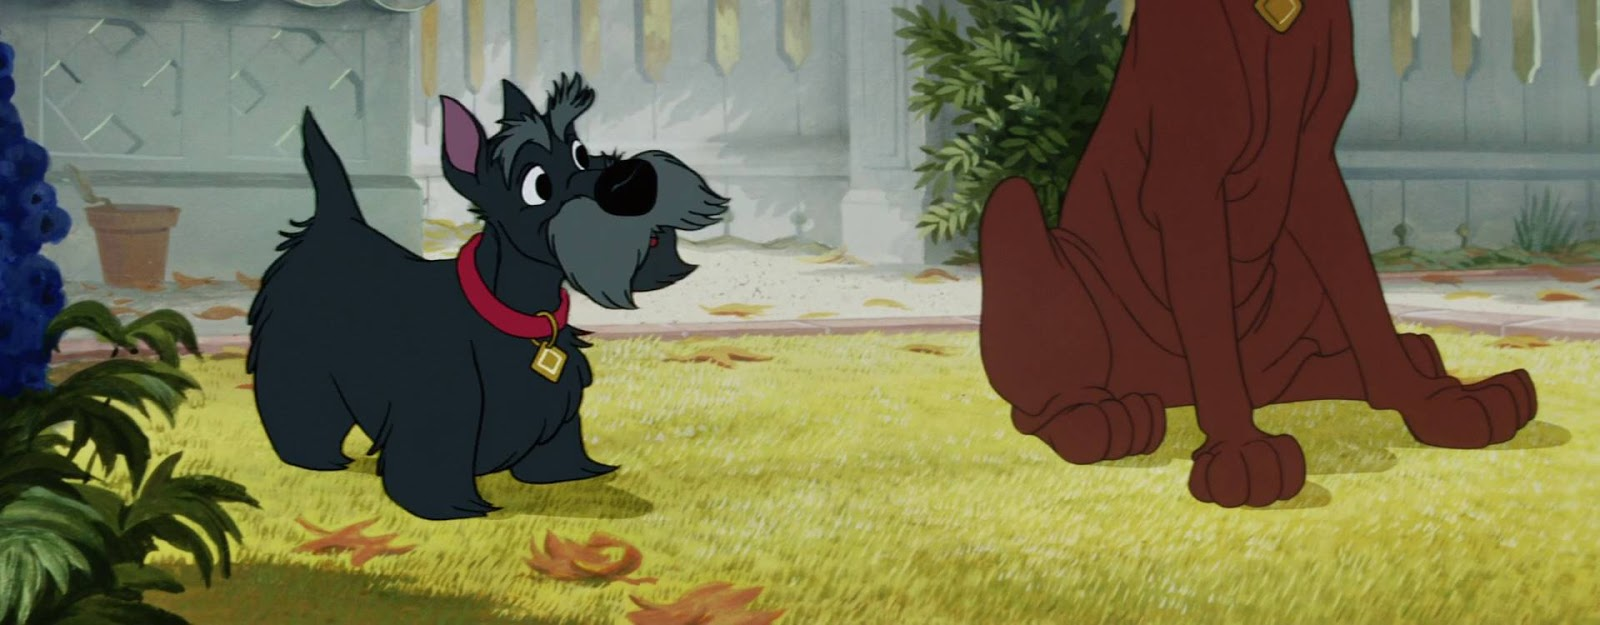 Lady and the Tramp (1955) 2